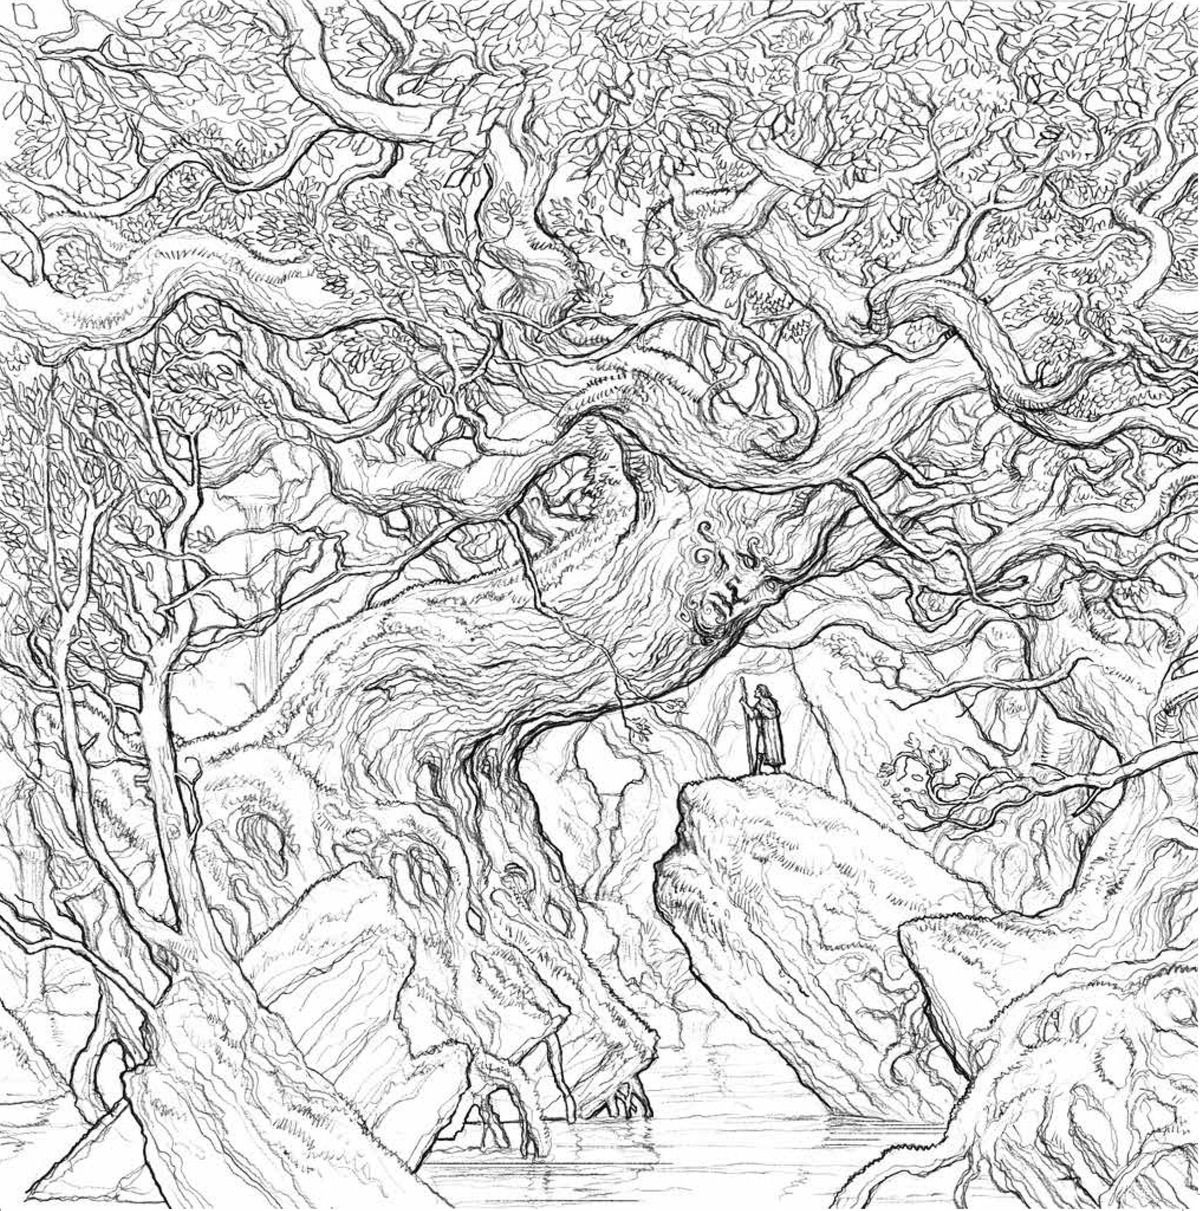 game of thrones colouring pages - Google Search | Game of thrones ...